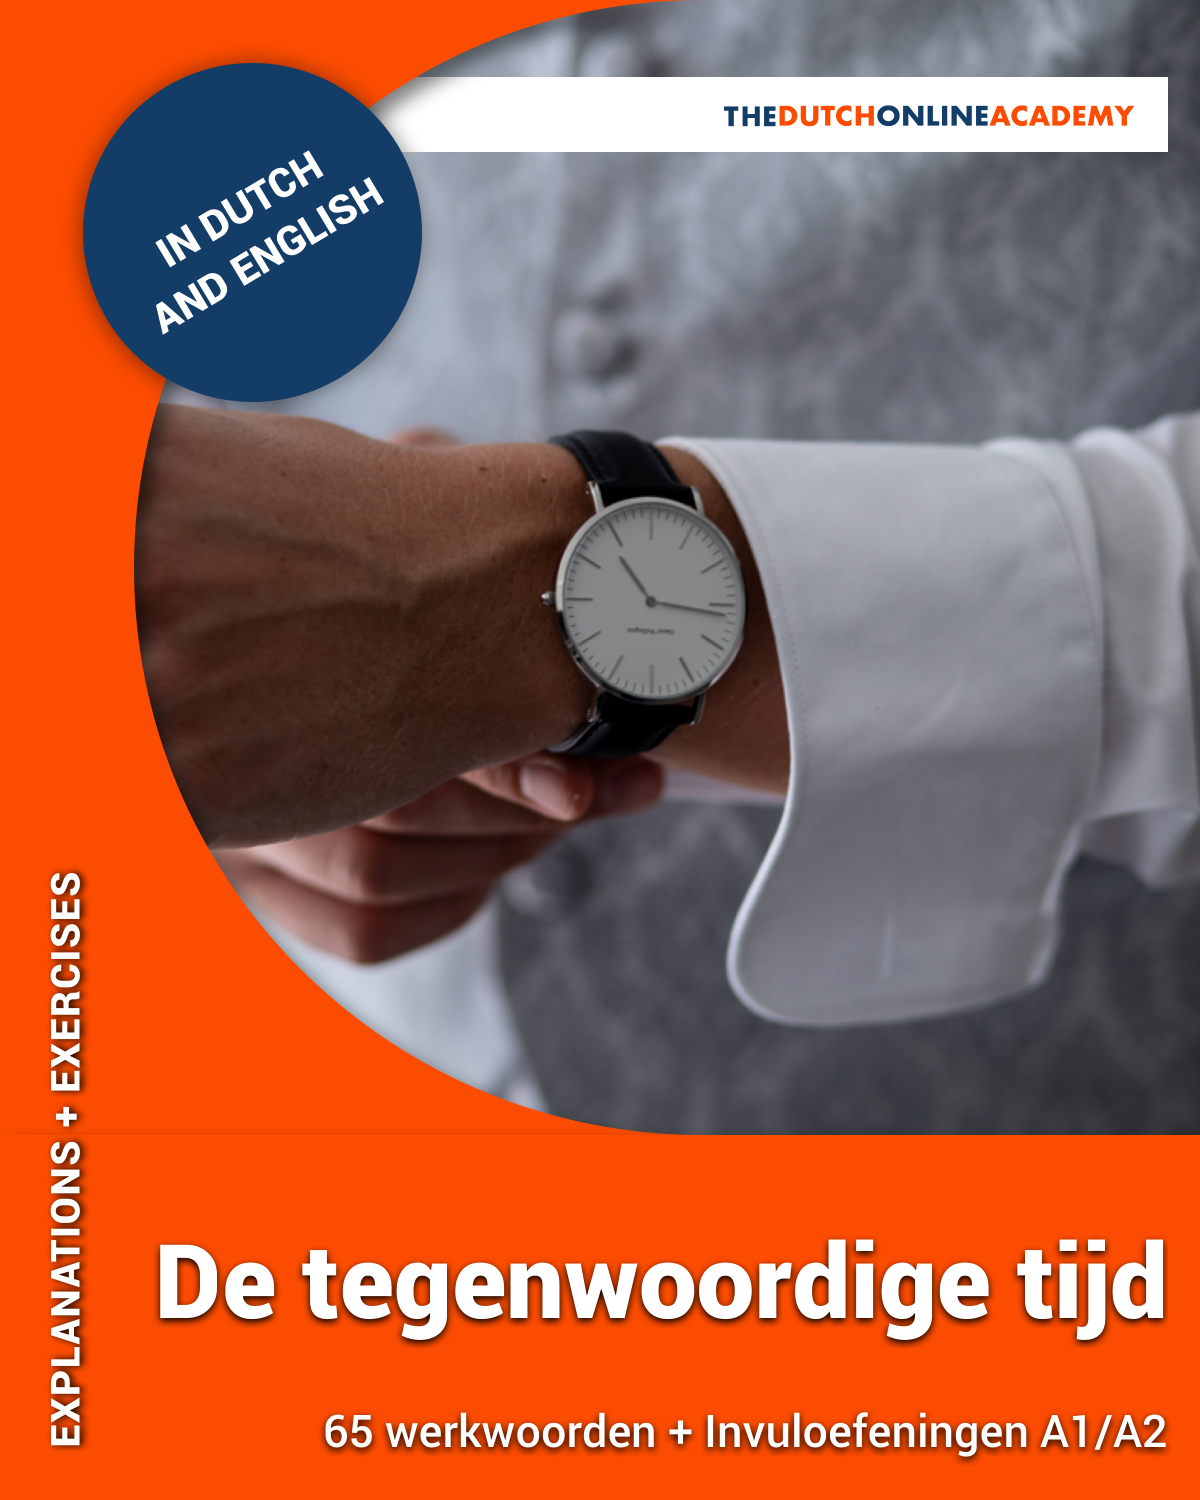 Learn Dutch with De tegenwoordige tijd